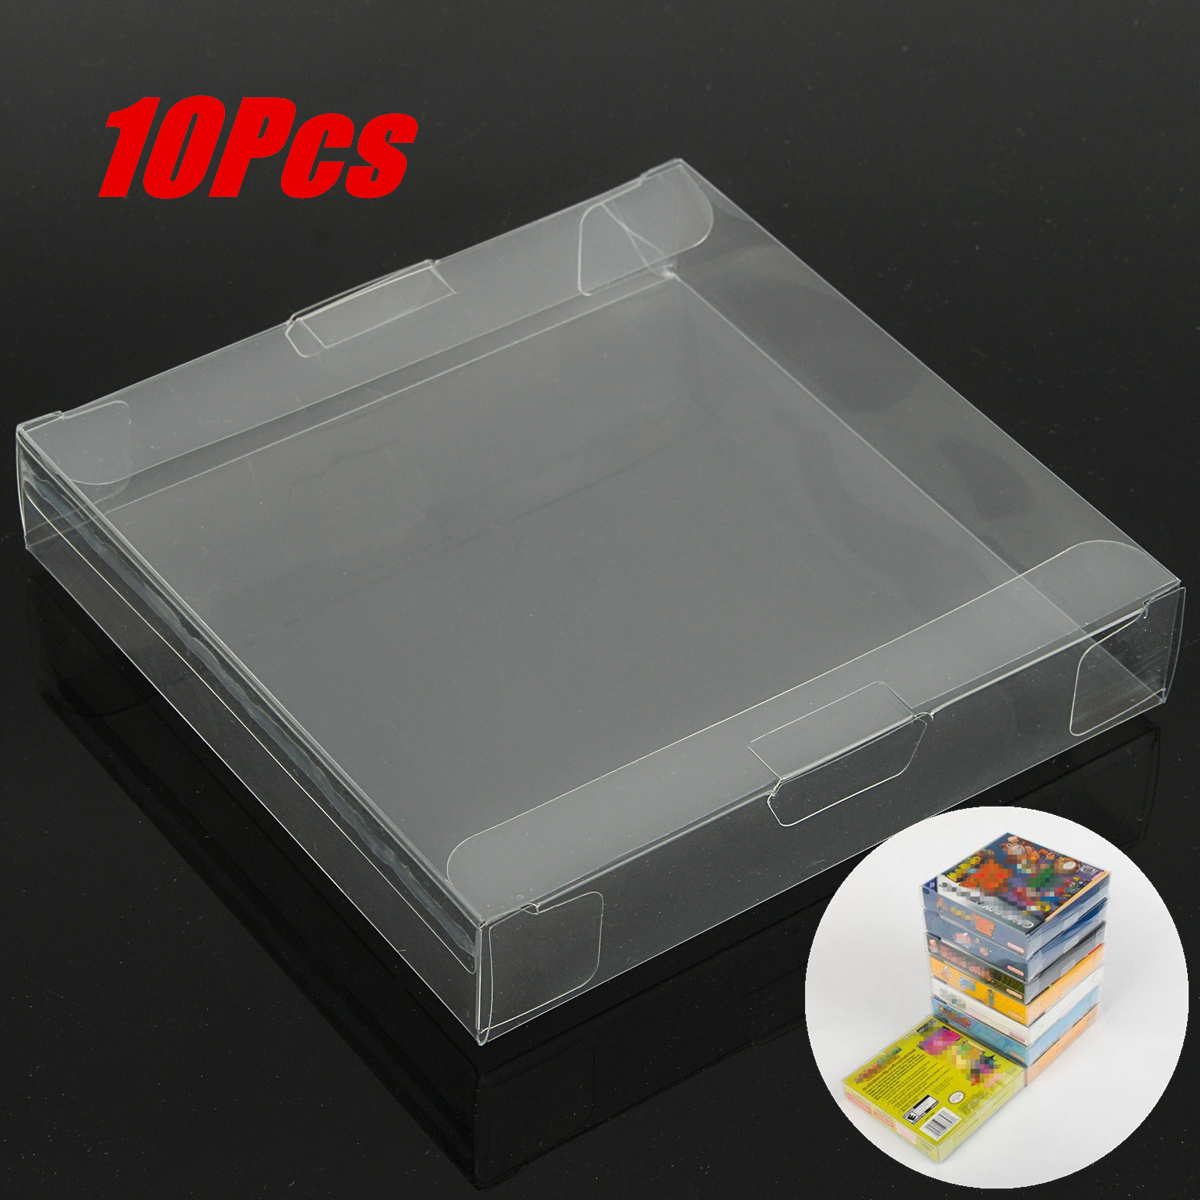 10x Game Cartridge Cover Case Clear Plastic Game Cartridge Case Dust Cover for Nintendo Game boy GBA CIB Boxed Game Protector